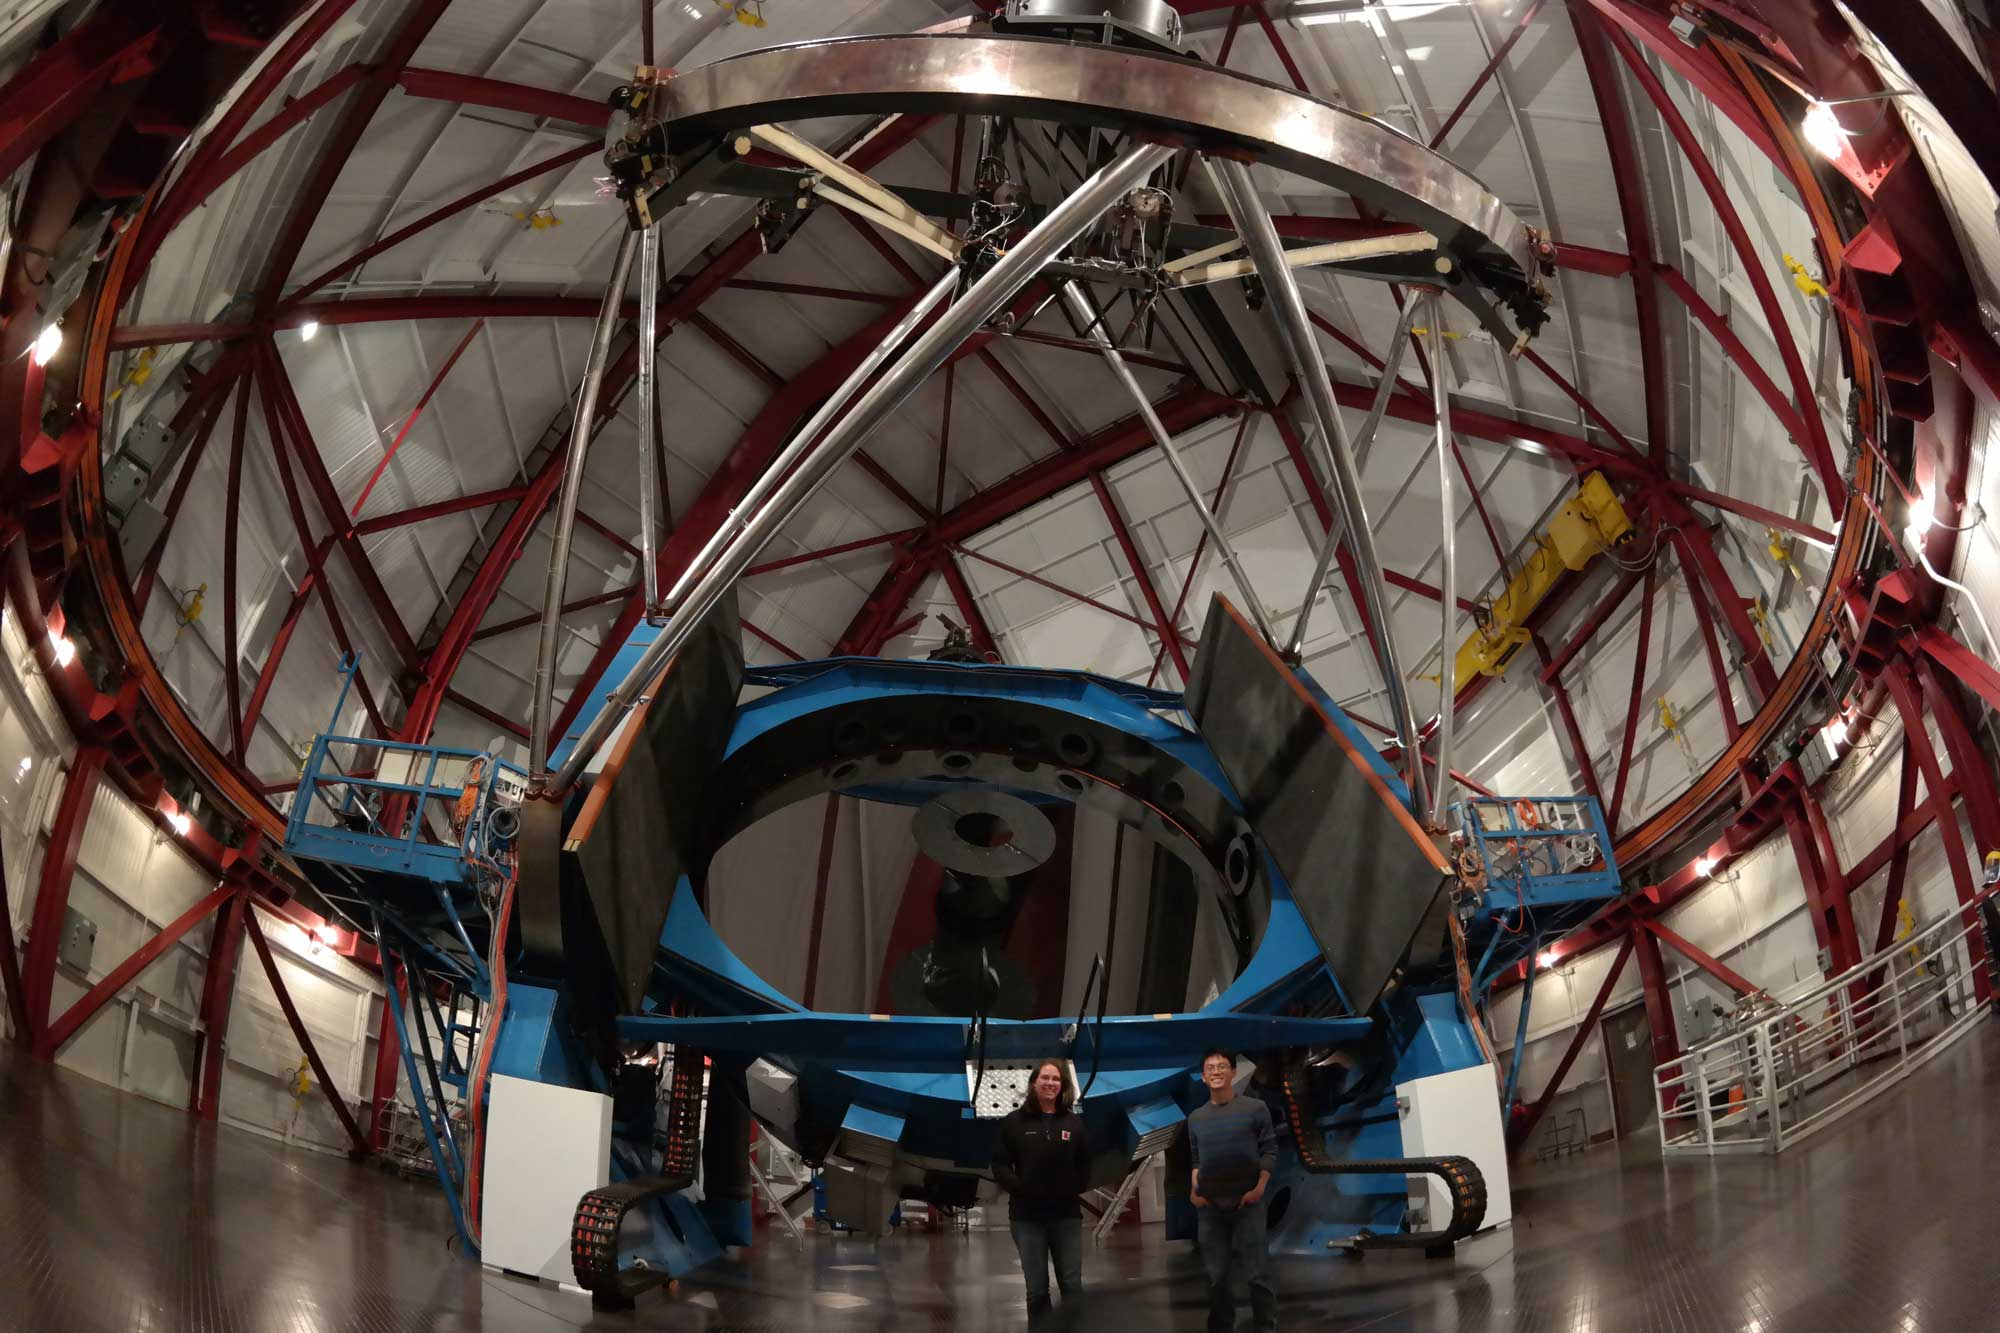 Two astronomers are seen inside the dome of the Magellan II telescope